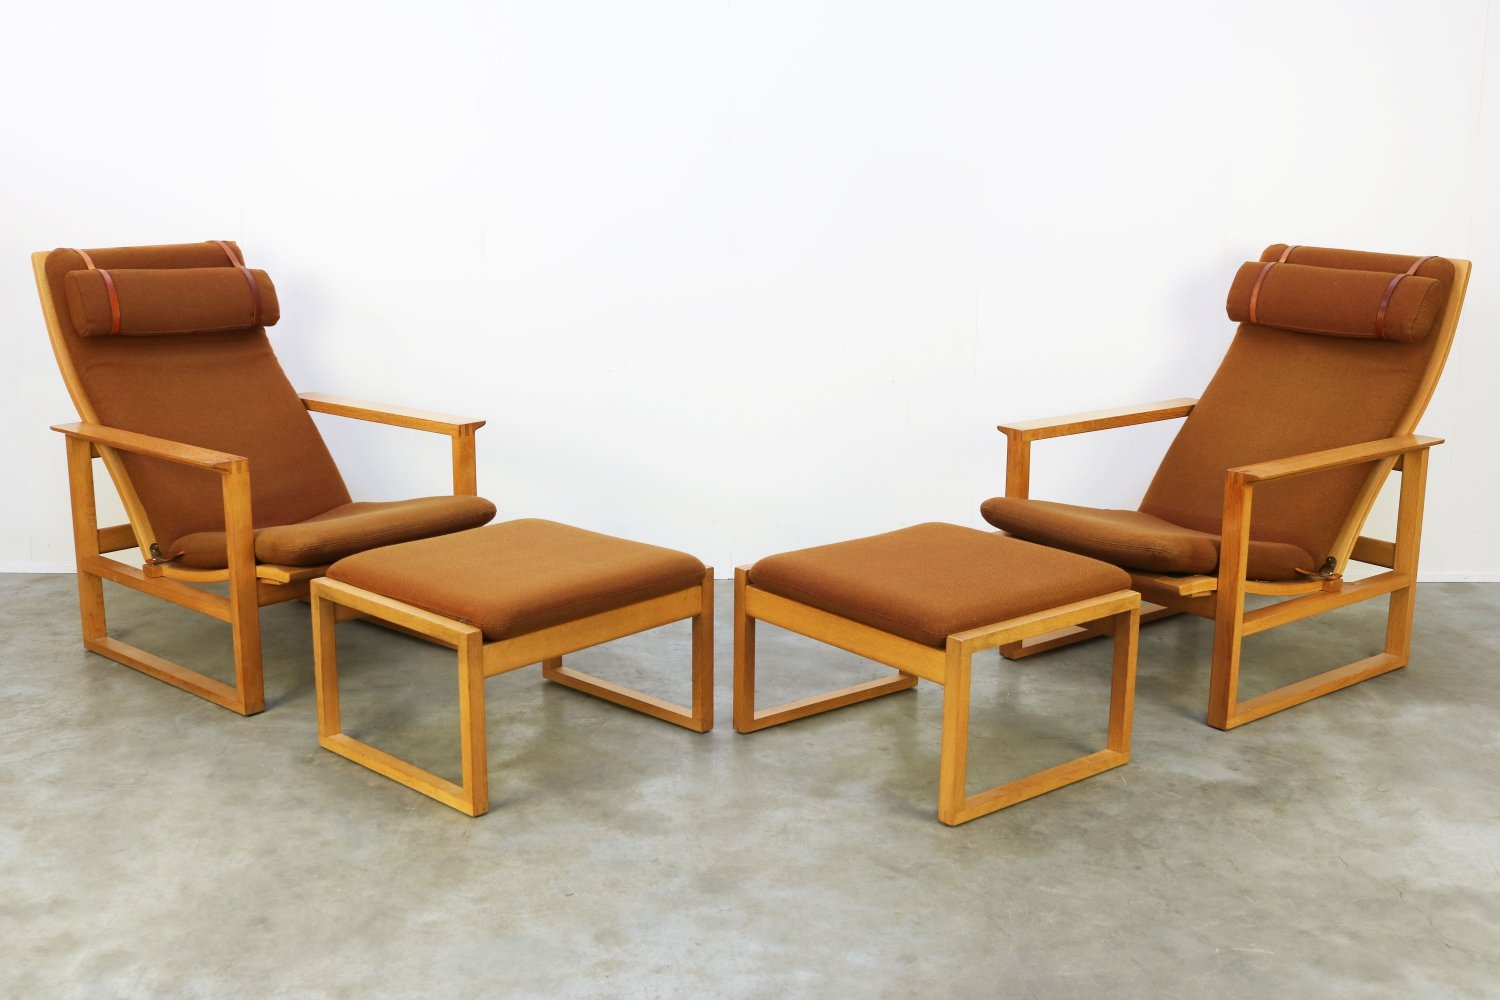 Pair of Model: 2254 Lounge chairs + Ottomans by Borge Mogensen for Fredericia